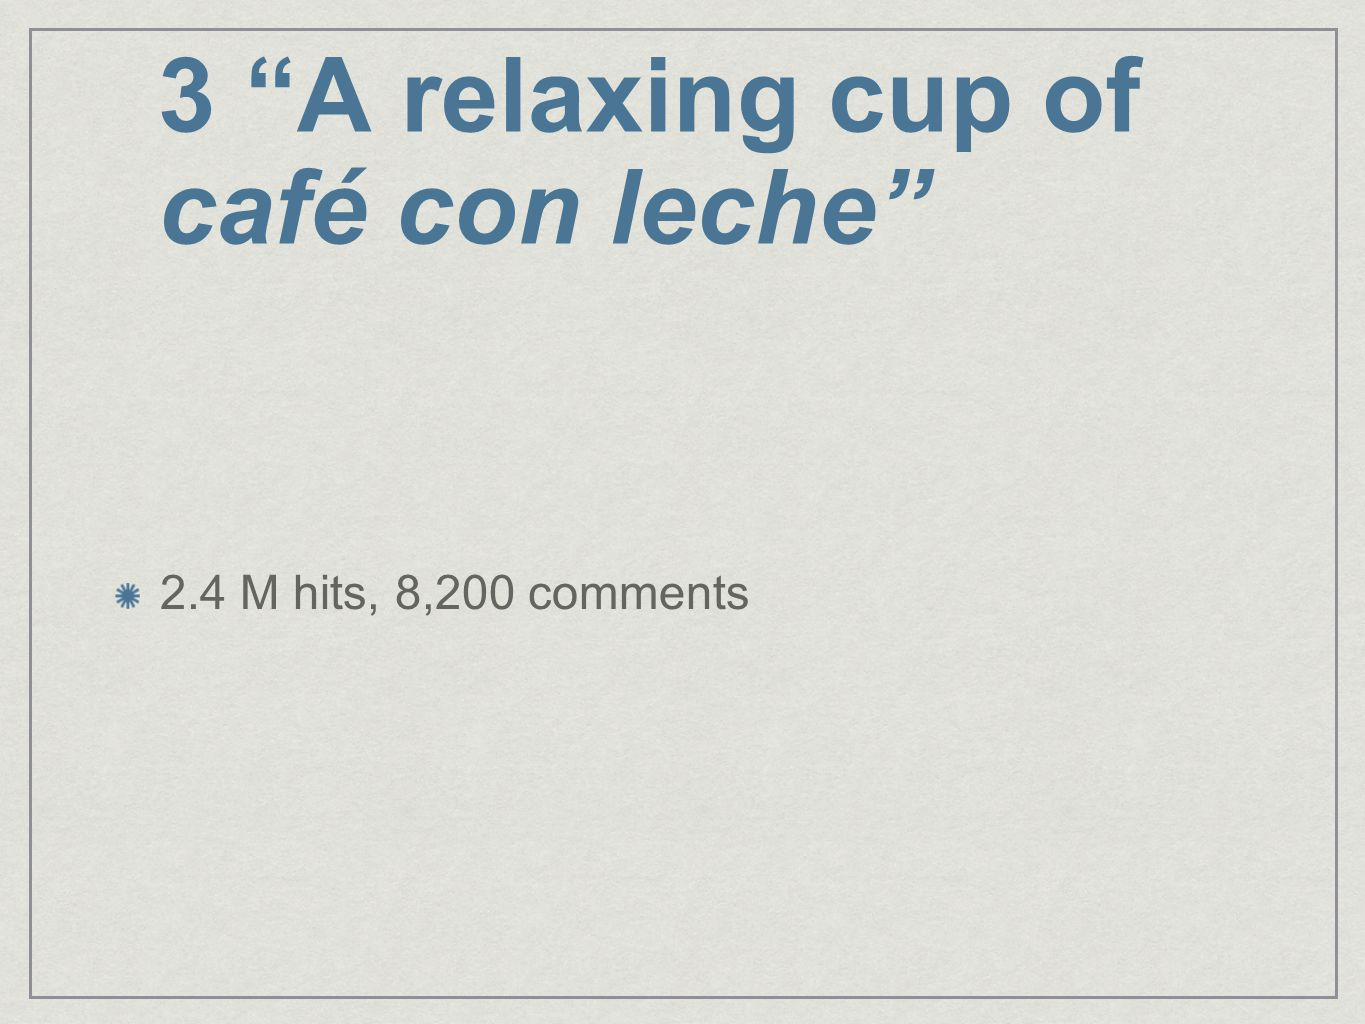 3 A relaxing cup of café con leche 2.4 M hits, 8,200 comments